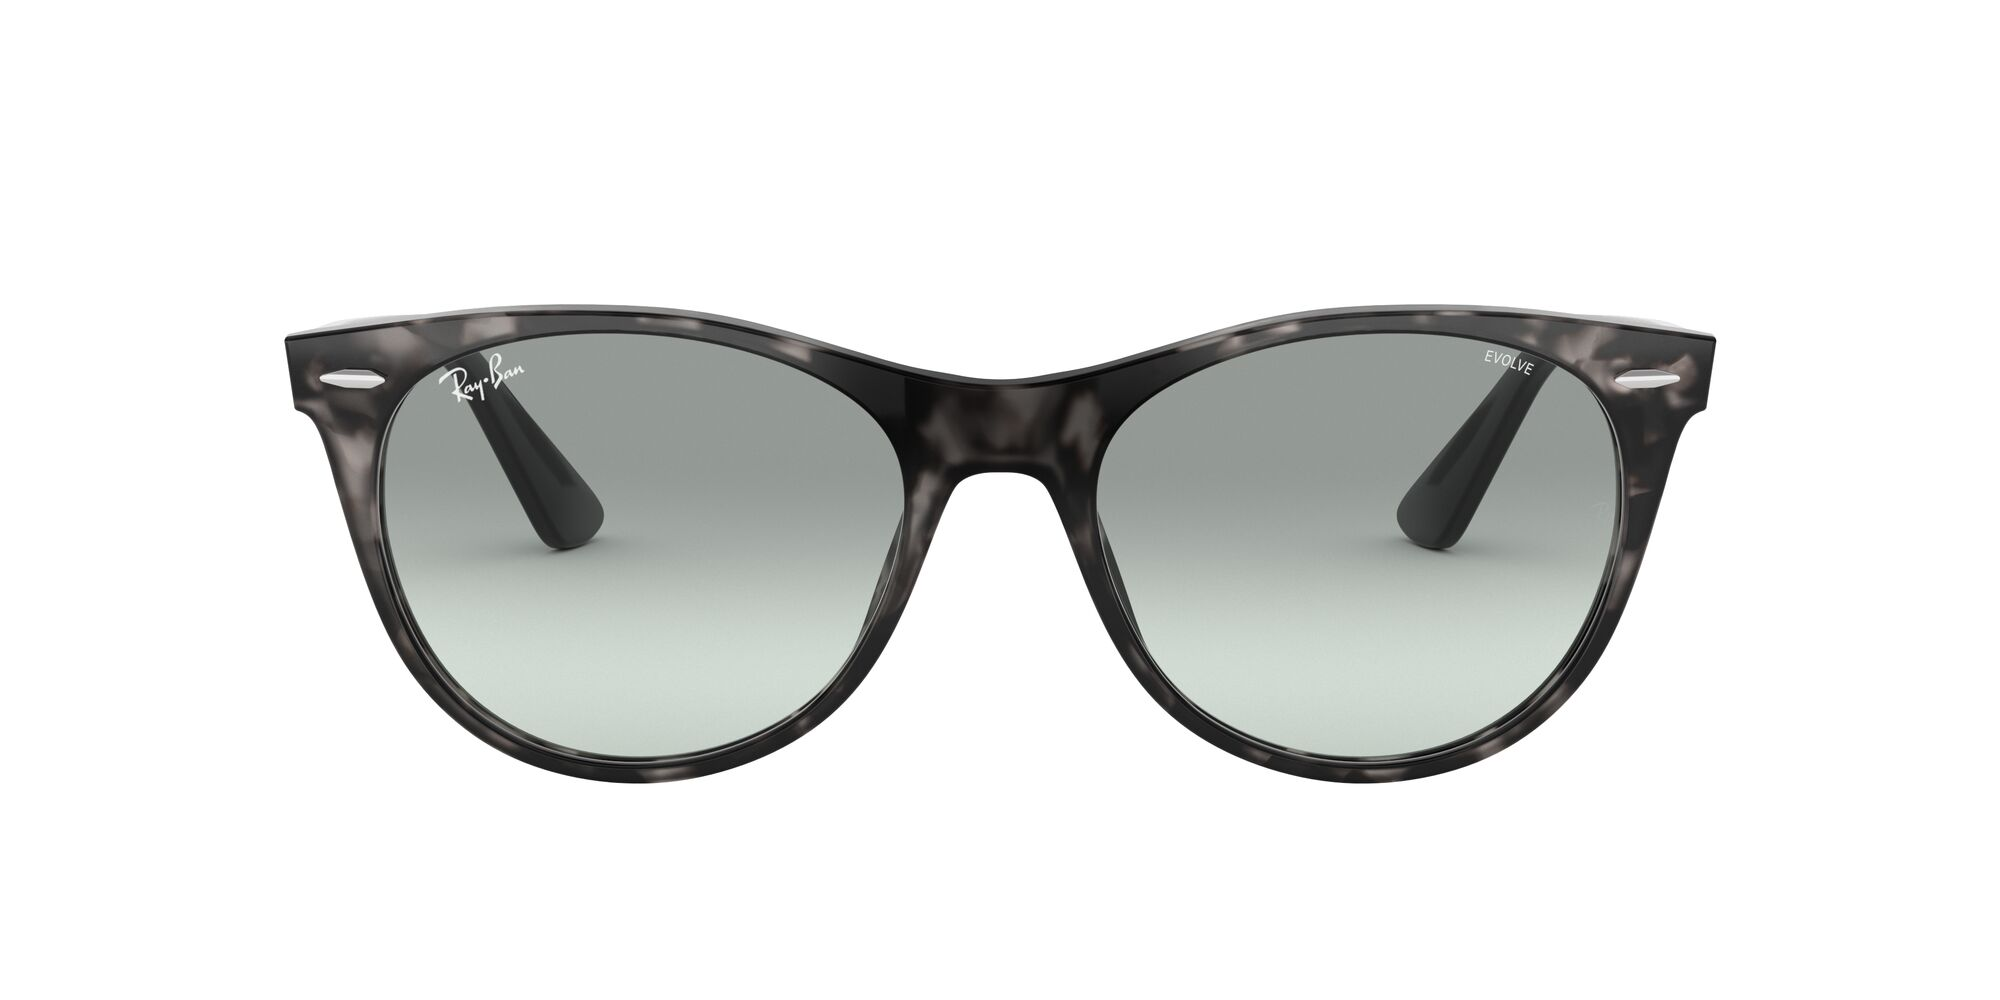 Front Ray-Ban Ray-Ban 0RB2185 1250AD 52/18 Grijs/Blauw